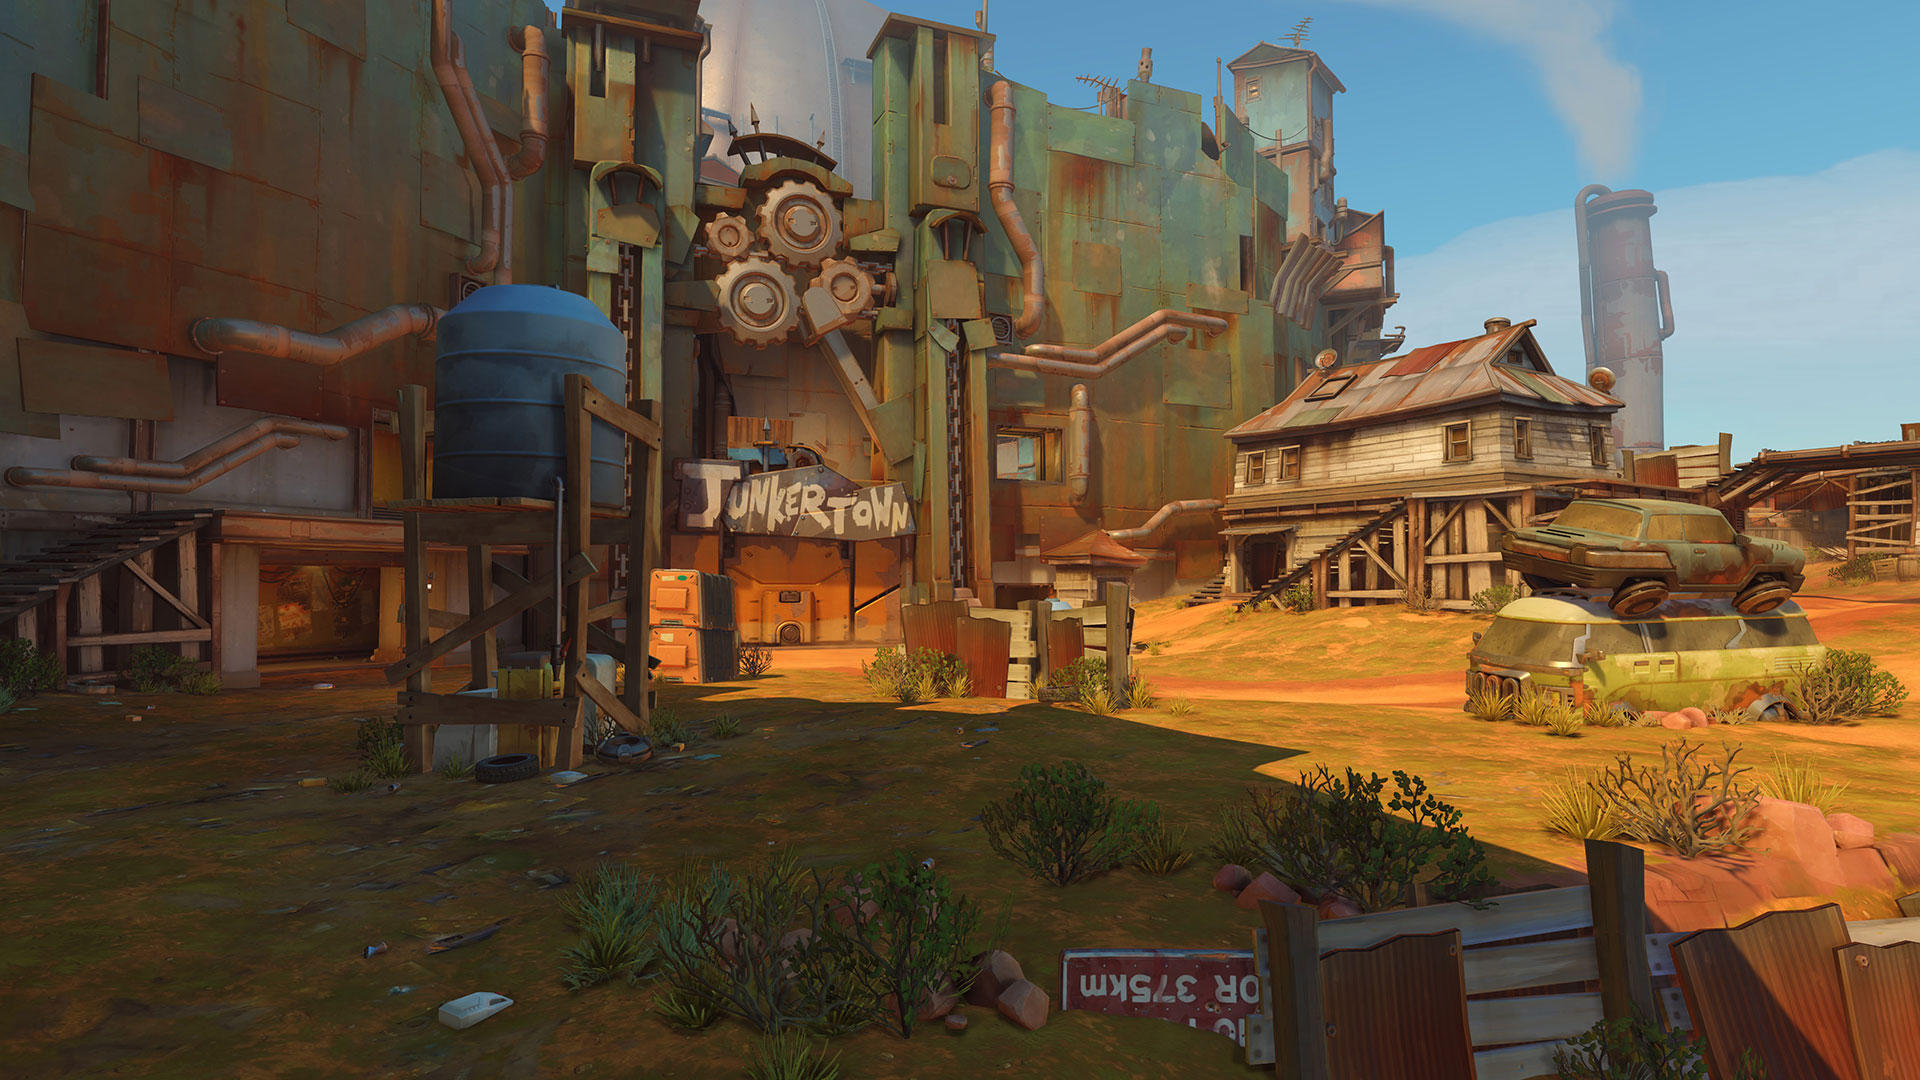 Junkertown In-Game Screenshot